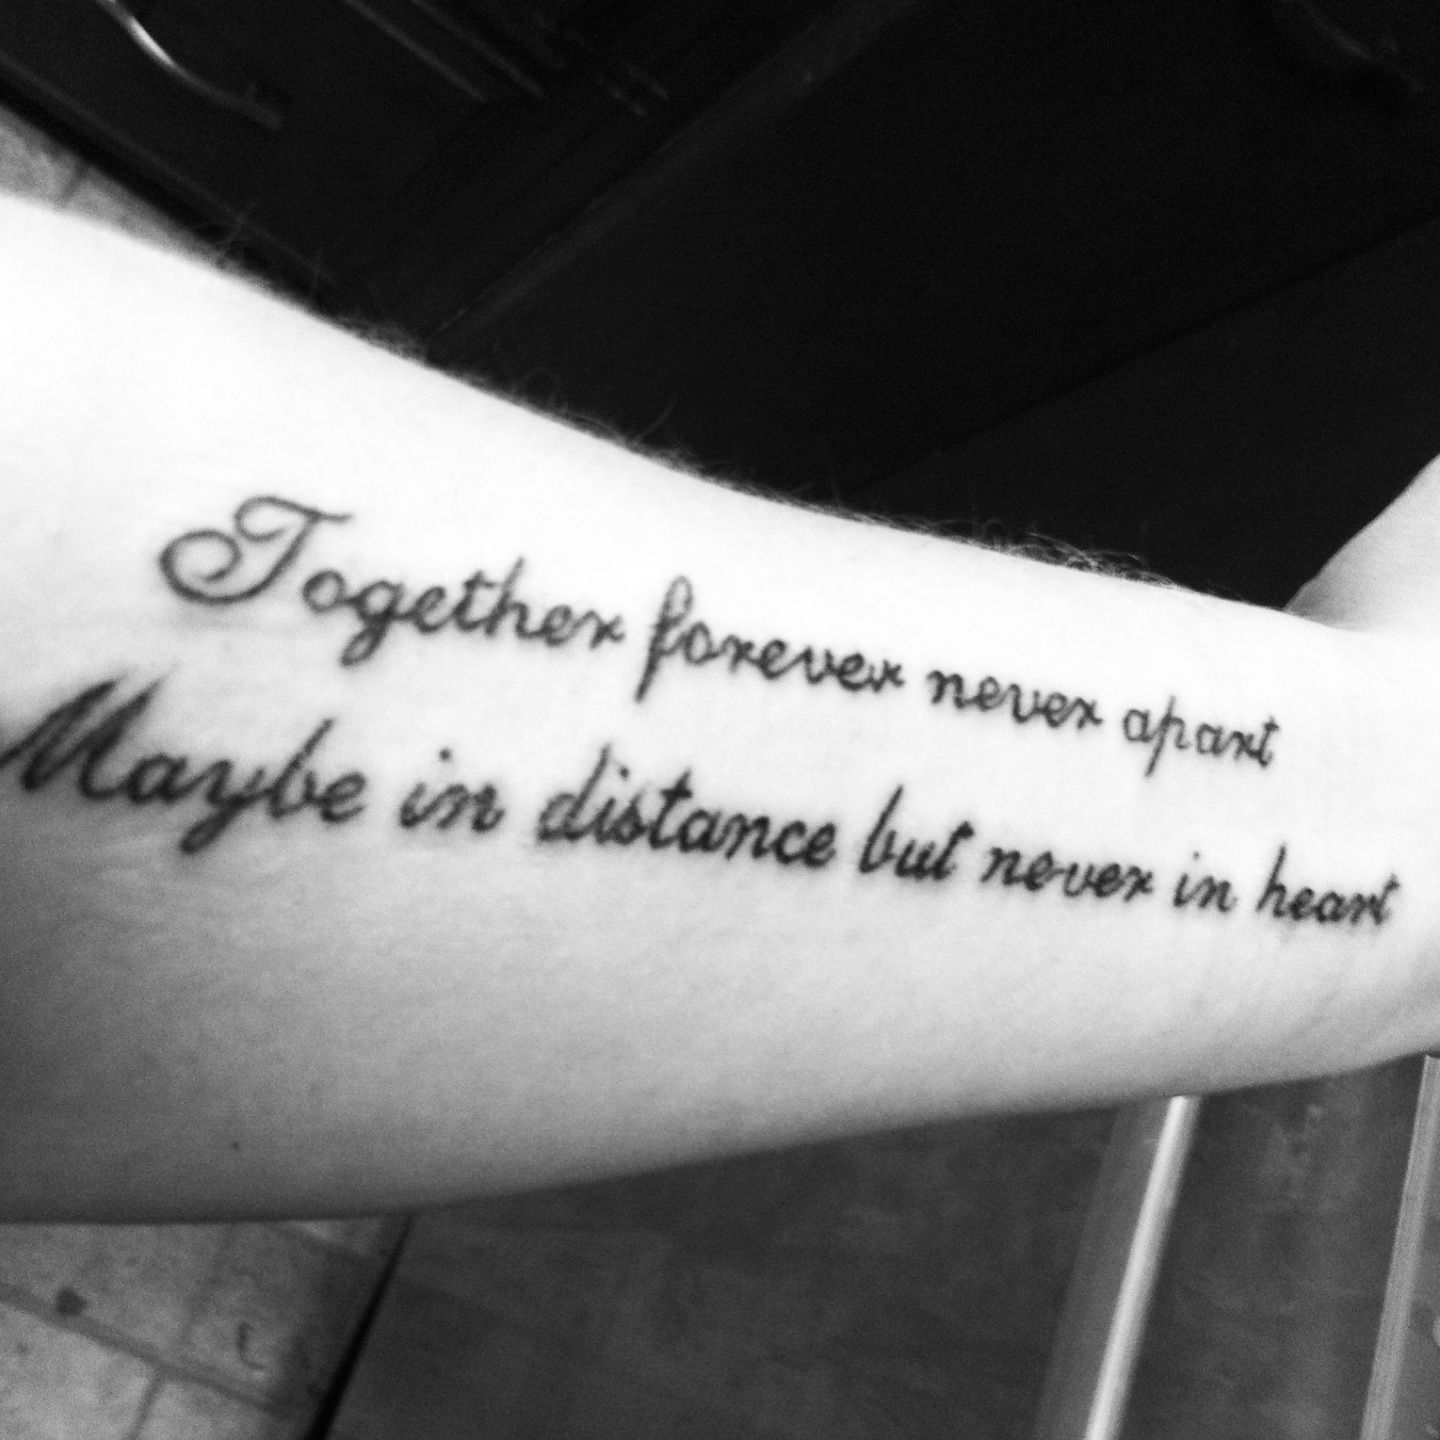 Matching Tattoo With My Sister Together Forever Never Apart Maybe